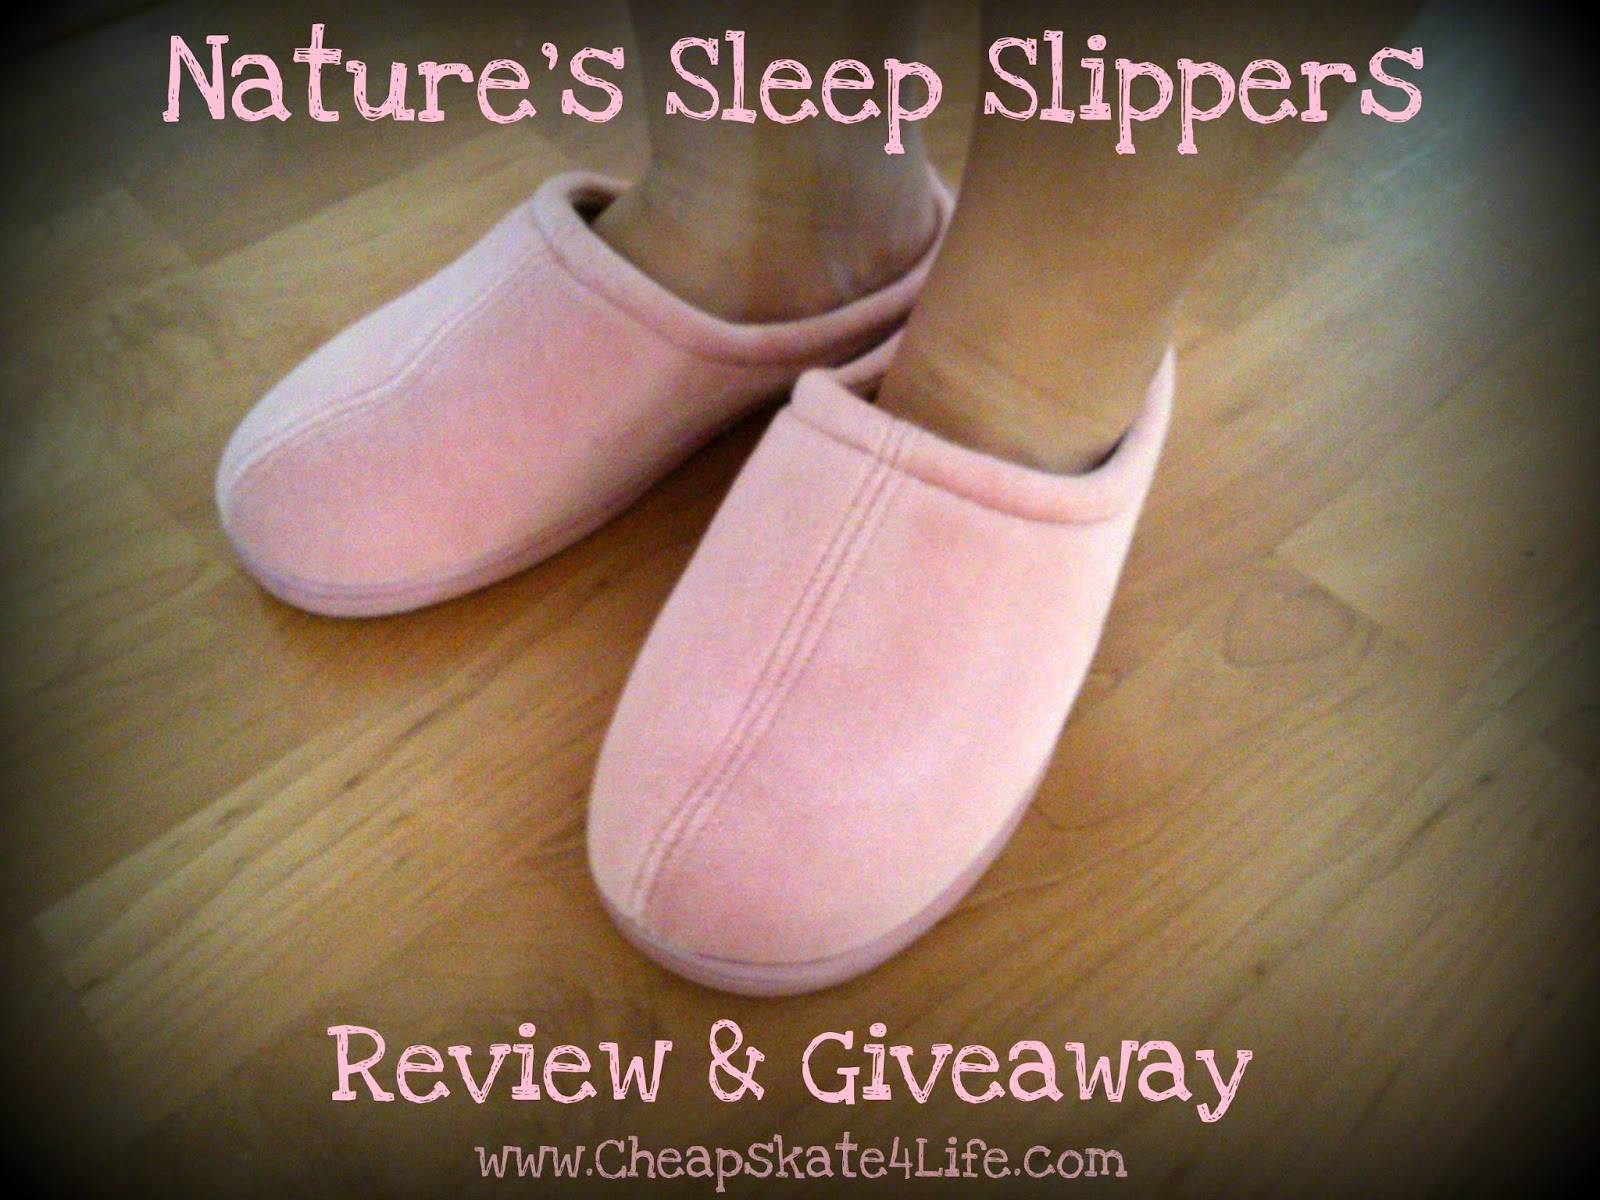 Nature's Sleep Memory Foam Slippers Review + Giveaway